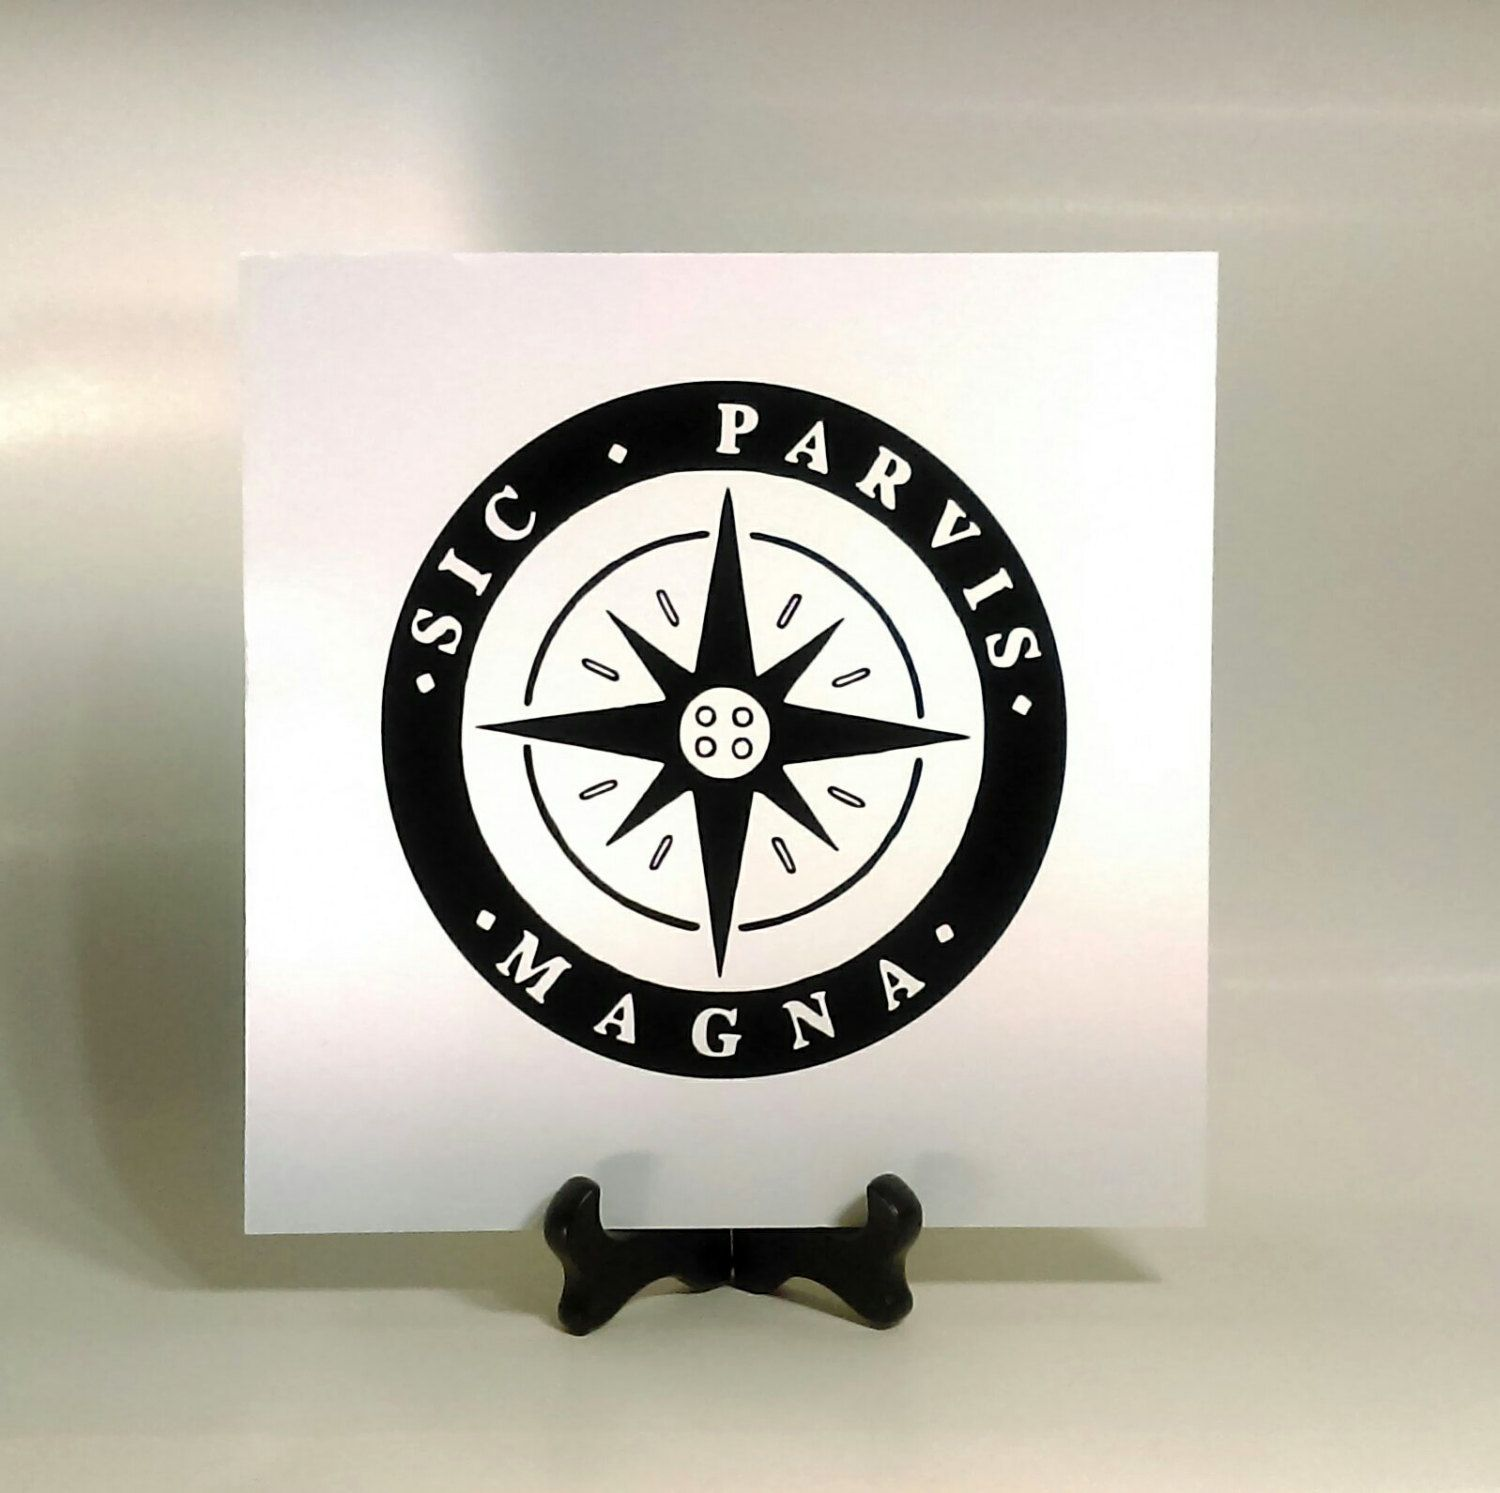 Uncharted 4 Vinyl Decal, Sic Parvis Magna Decal, A Thiefs End Decal, Greatness…